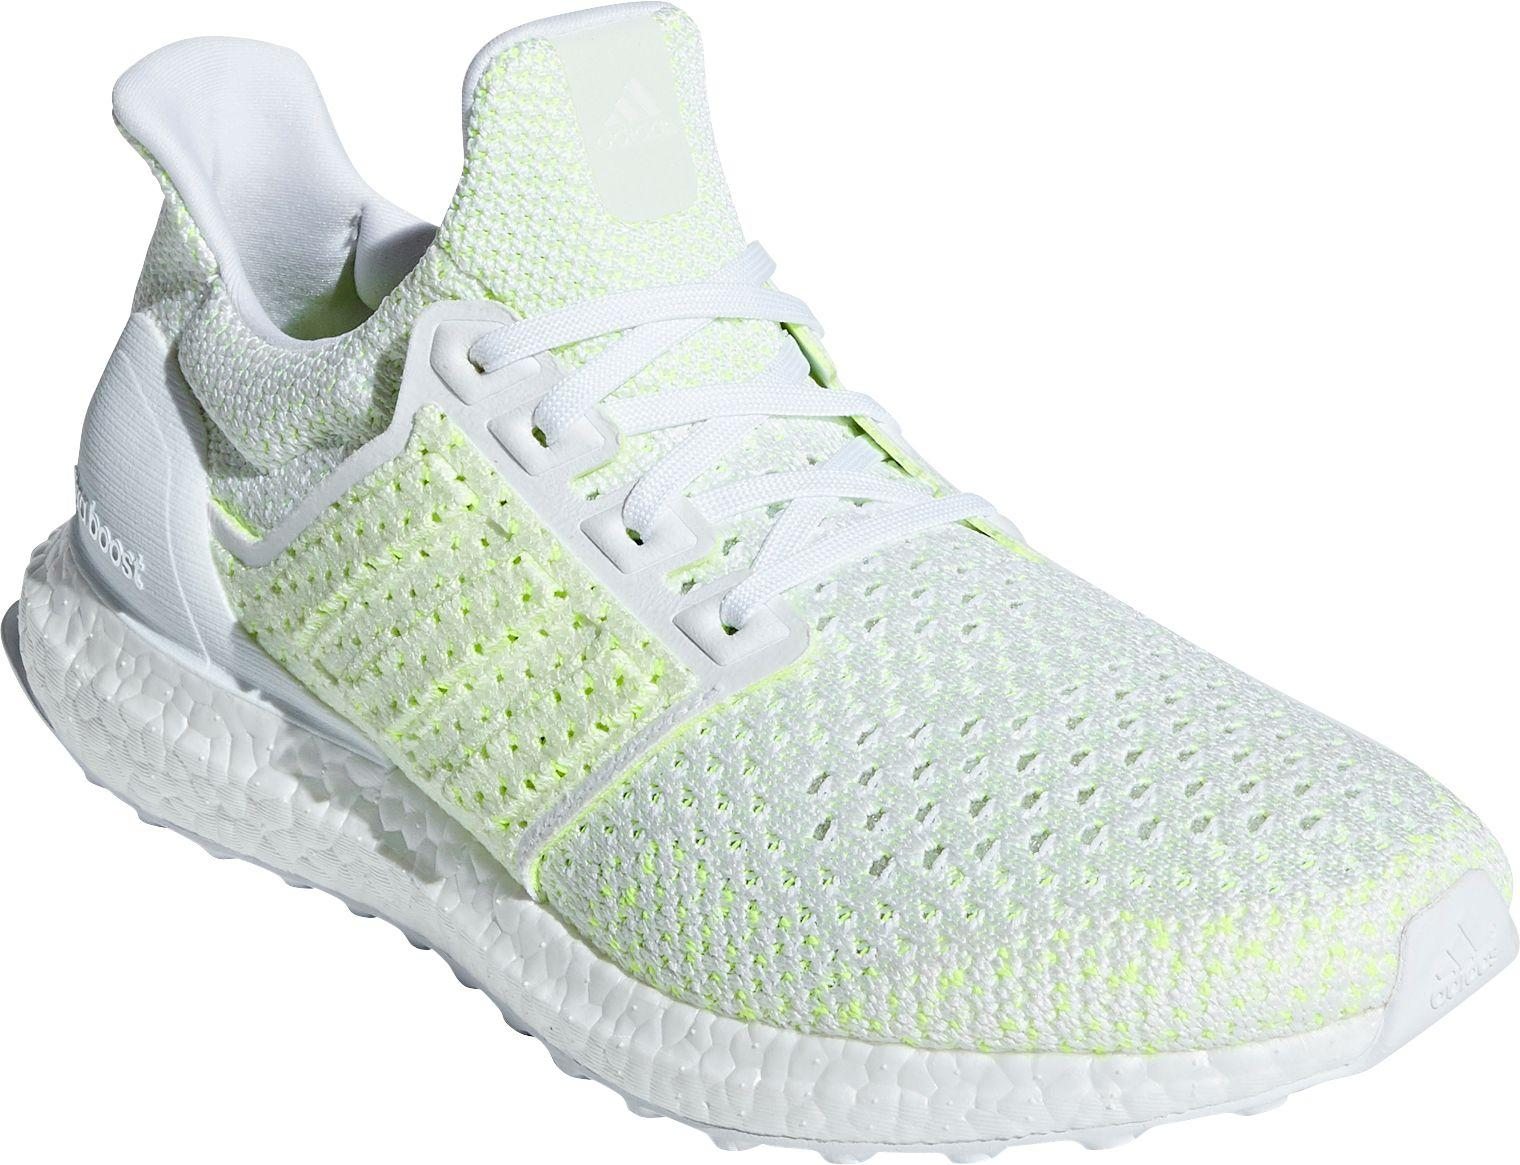 3ae0075097fb5 Lyst - adidas Ultraboost Clima Running Shoes in White for Men